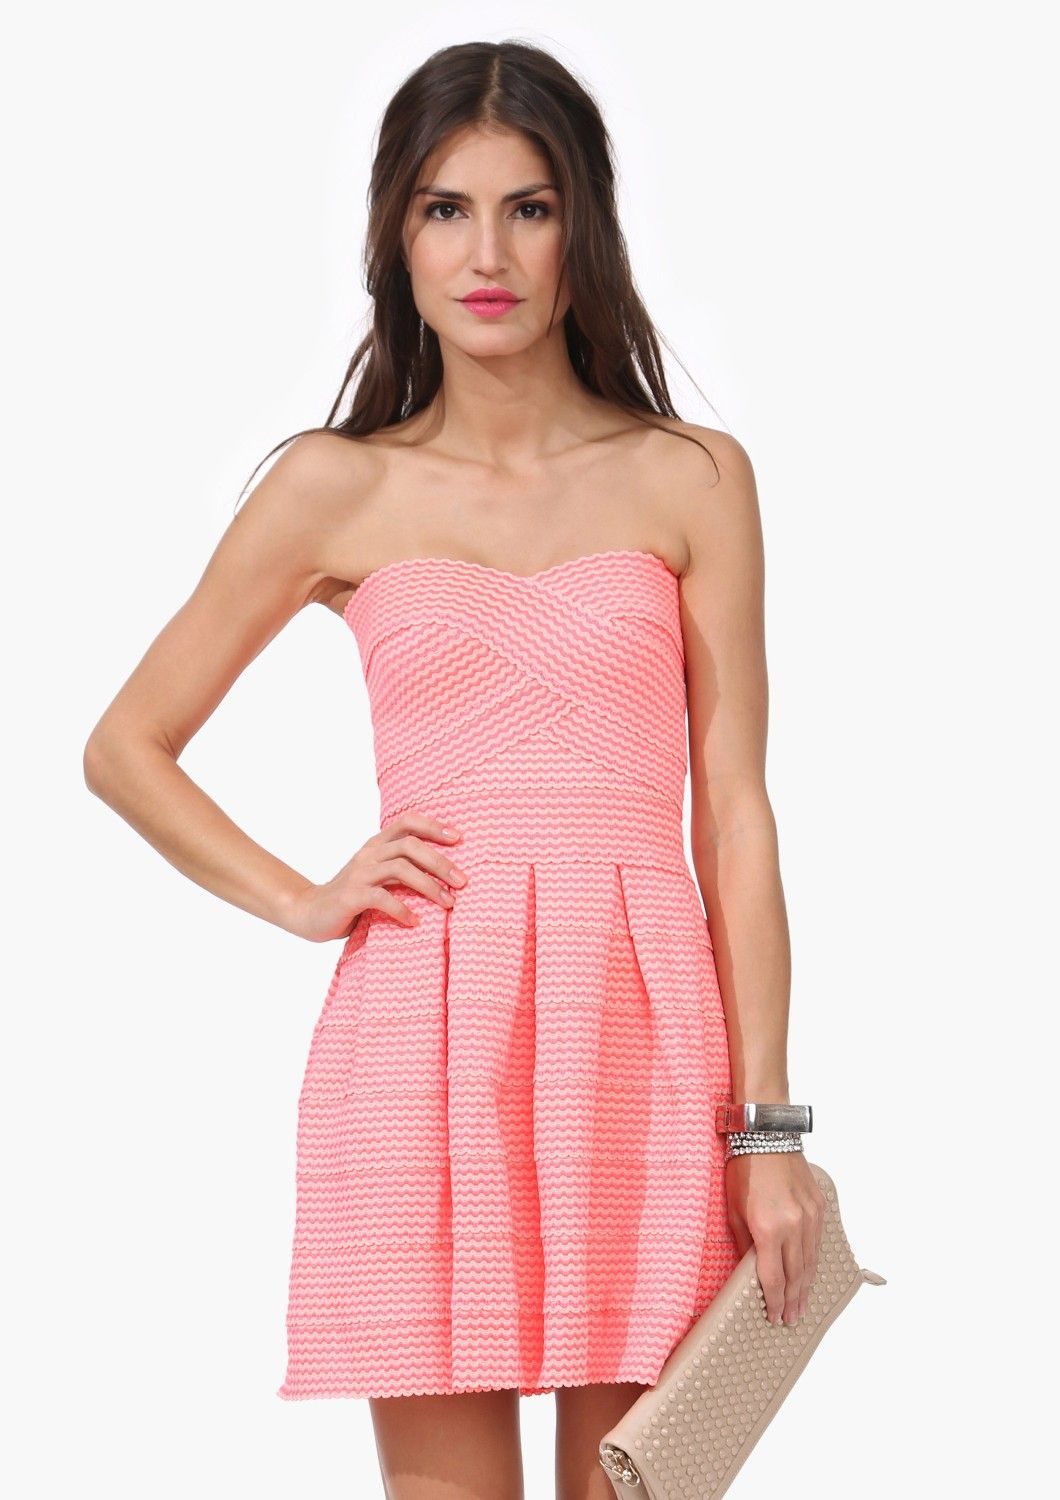 Guest of wedding dresses spring  Neon Bandage Dress  Tattoos and Trends  Pinterest  Neon Clothes